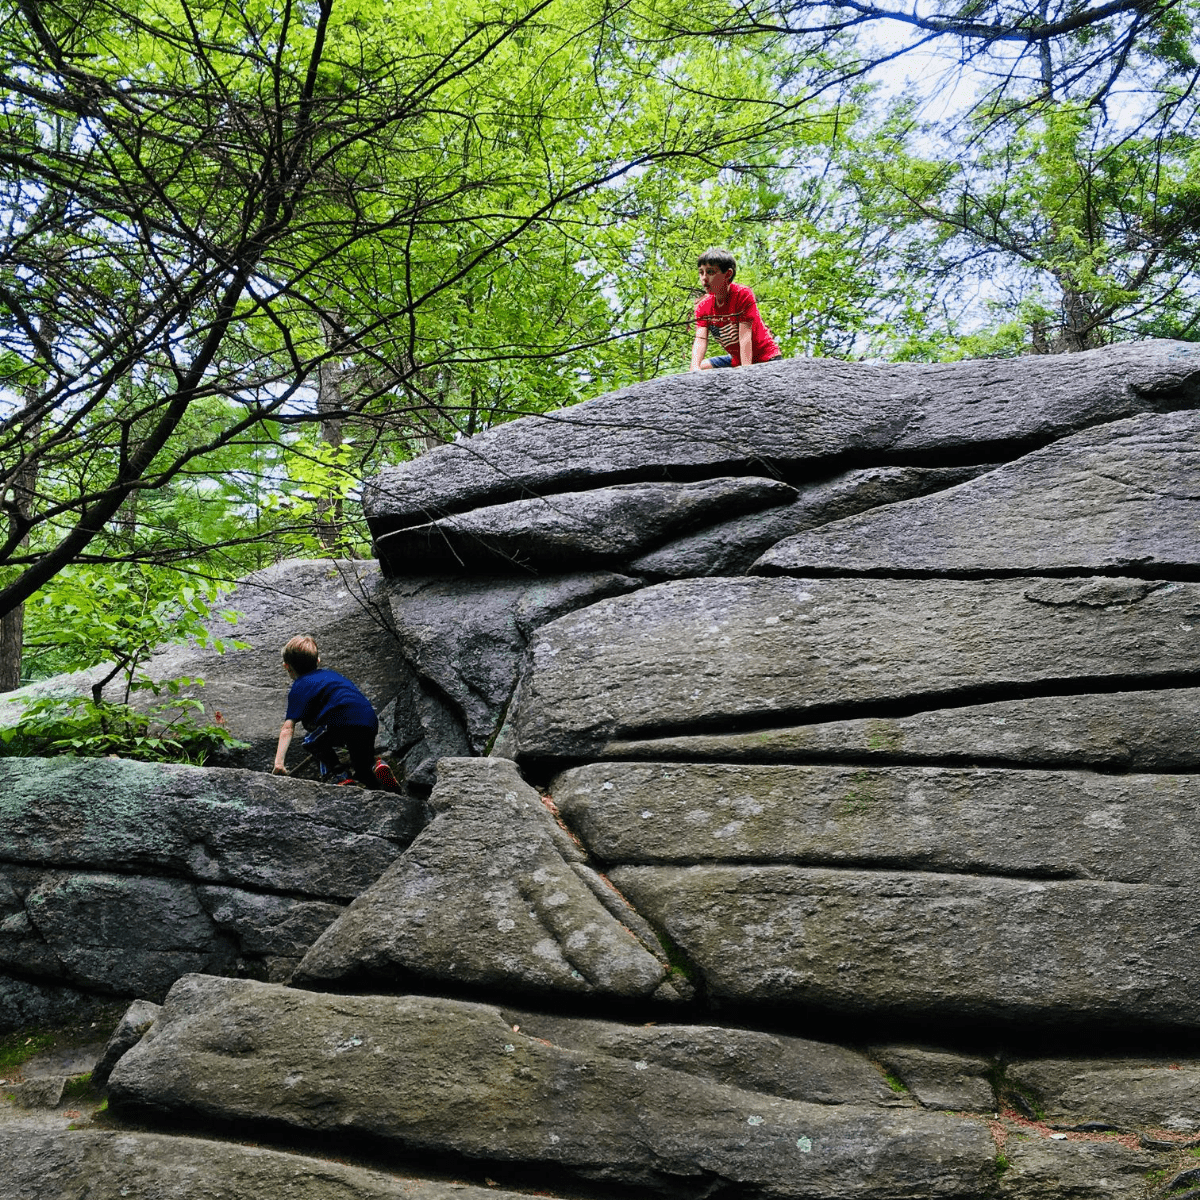 Kids climbing up a large boulder while hiking